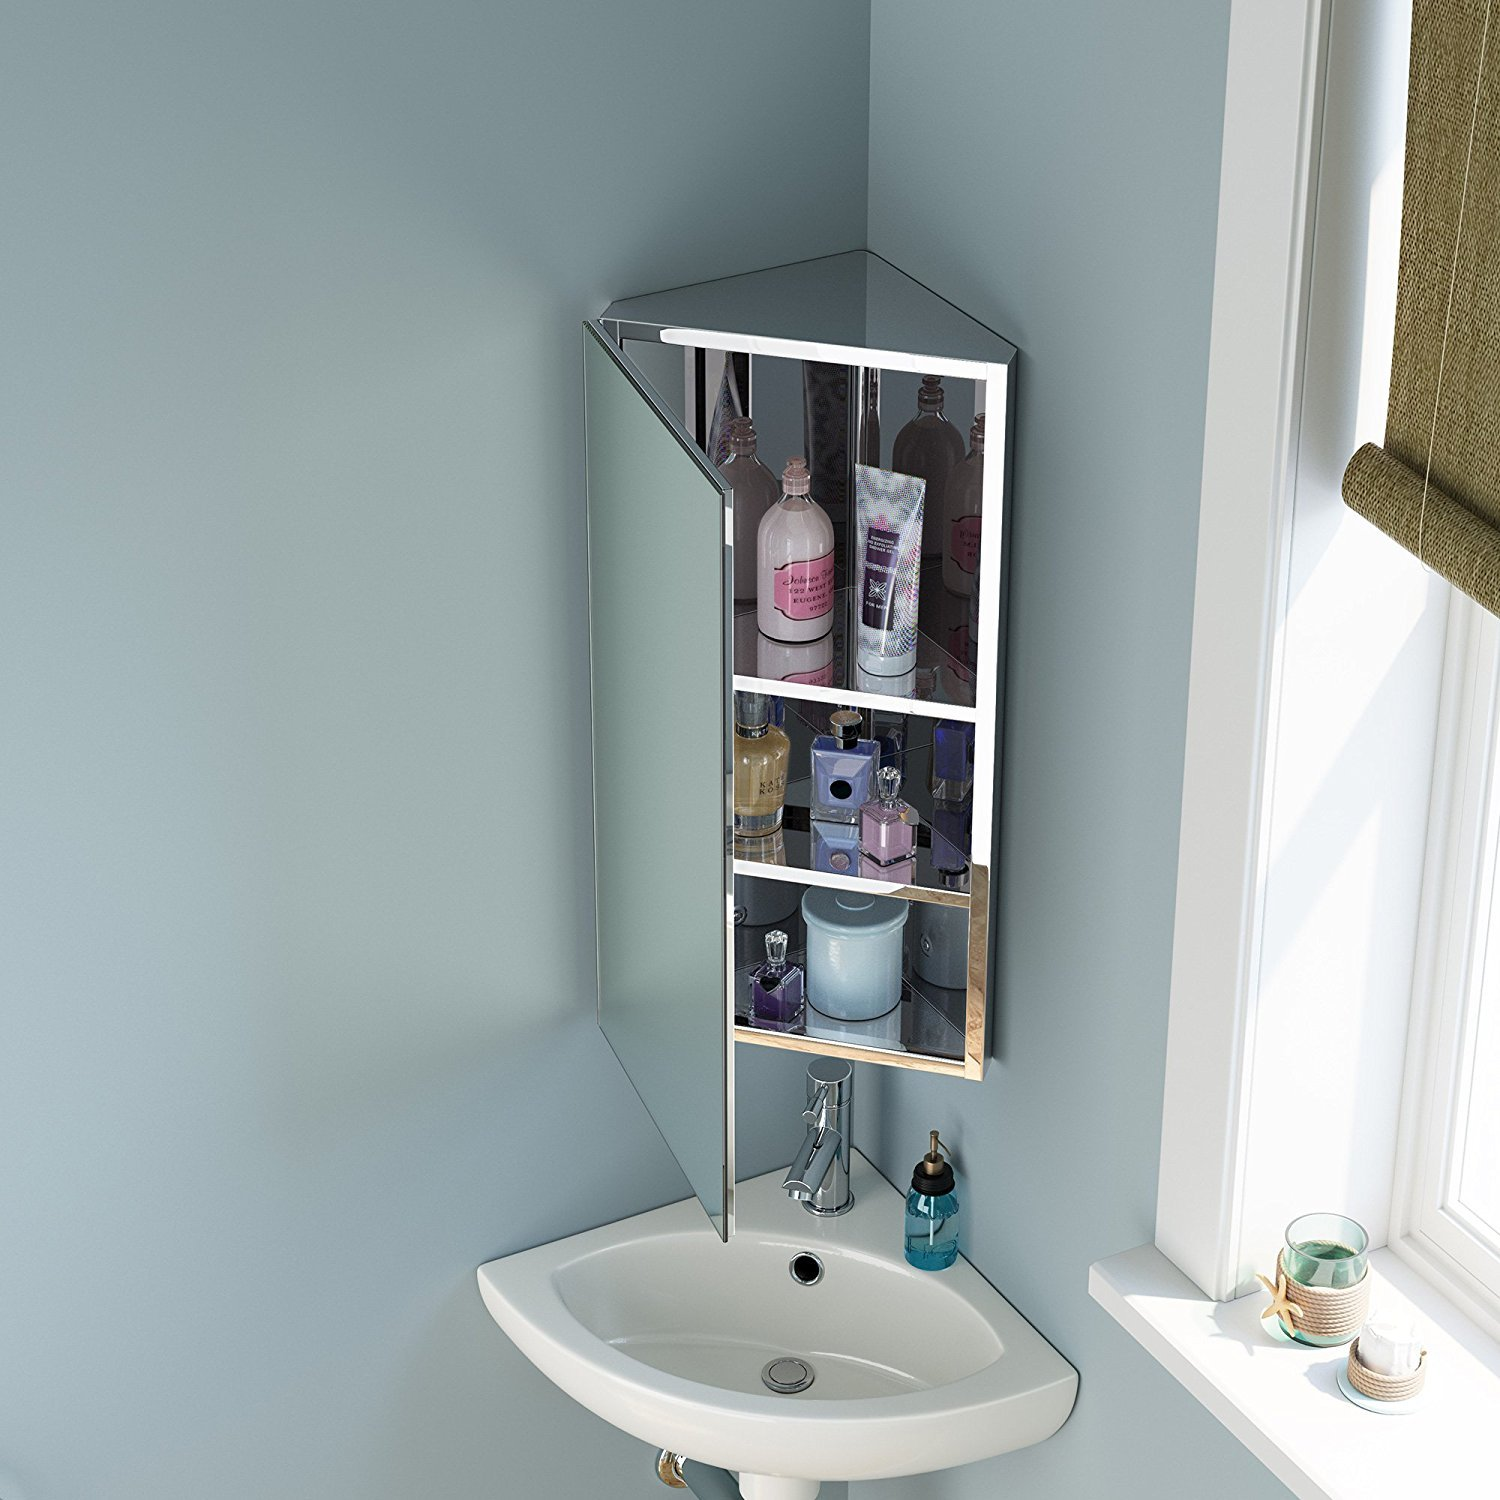 Seababyhouse Bathroom Storage Corner Cabinet Mirror Stainless Tall Steel Wall Mounted Organization Unit 3 Shelves Buy Online In India At Desertcart In Productid 57524546